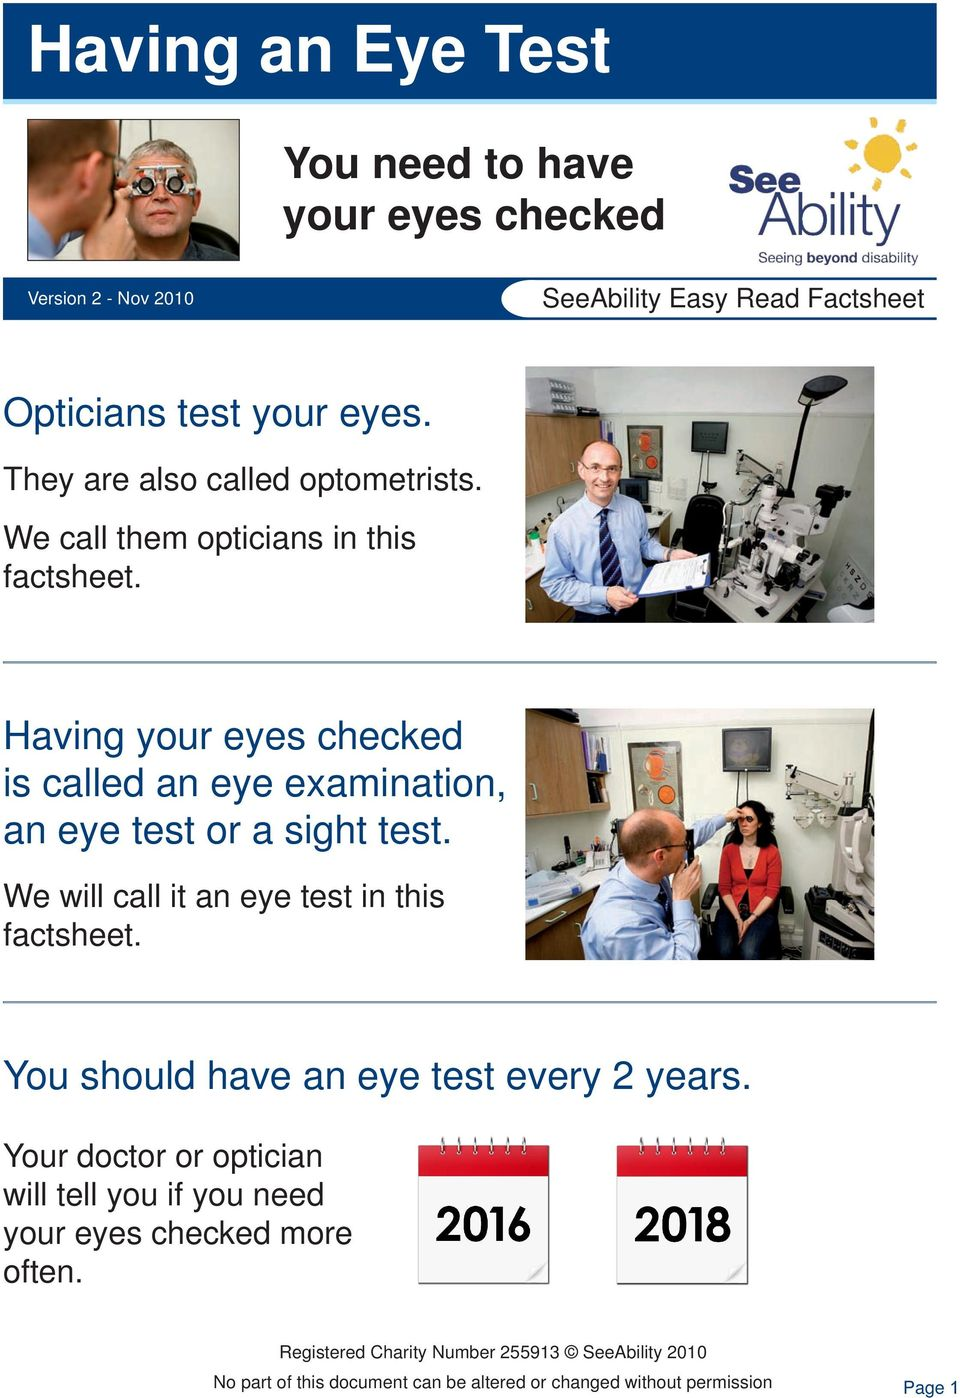 Having your eyes checked is called an eye examination, an eye test or a sight test. We will call it an eye test in this factsheet.